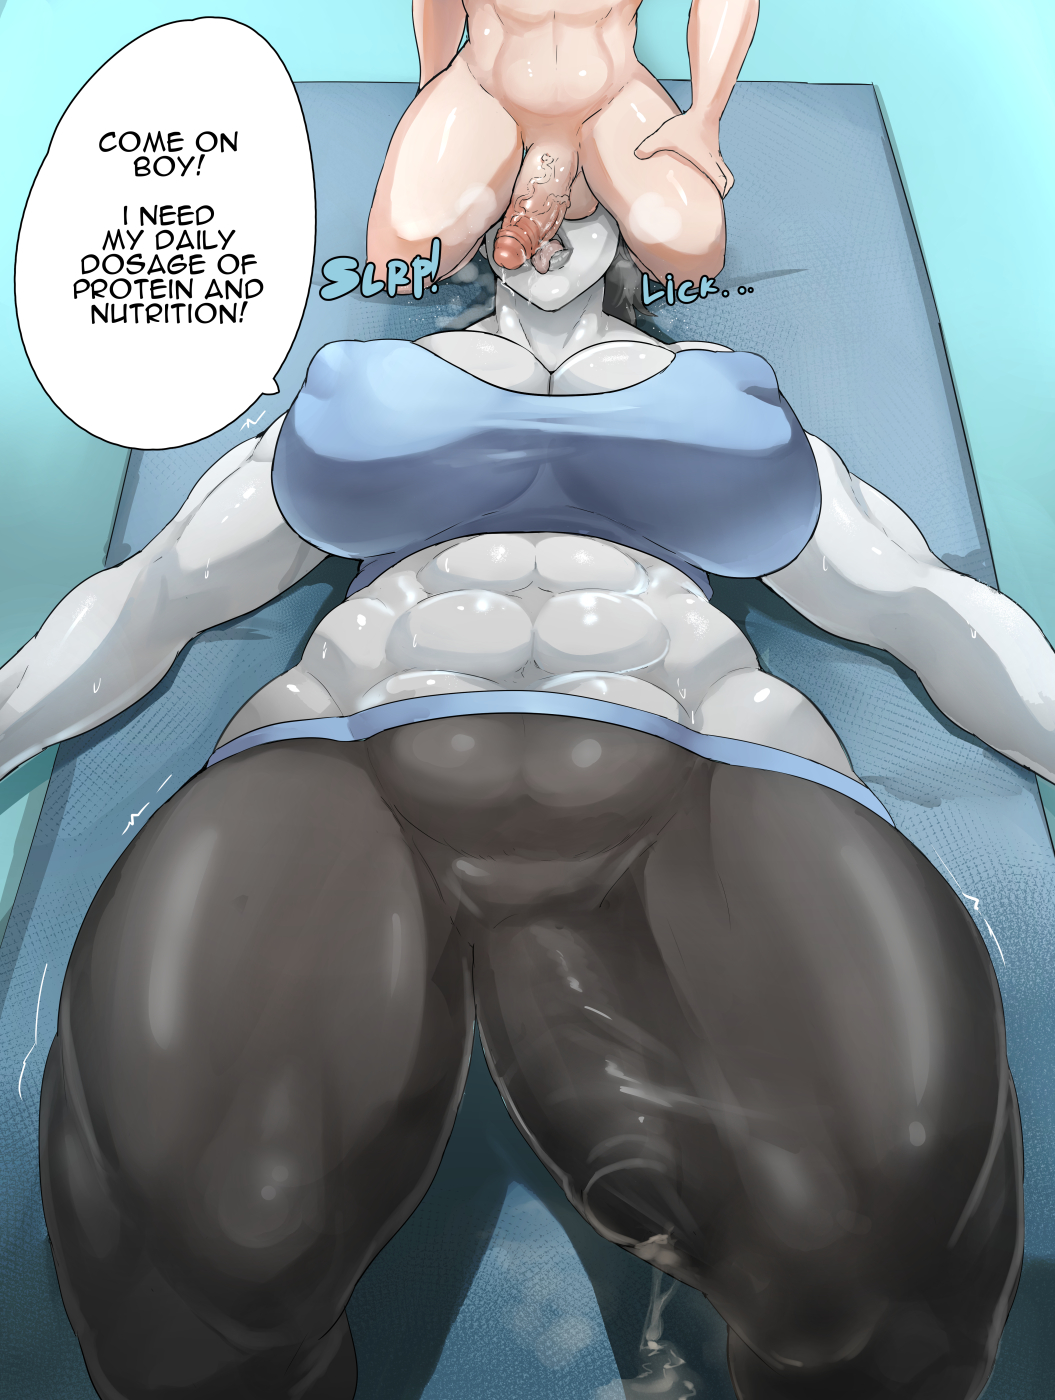 futa porn fit wii trainer My little pony carrot cake